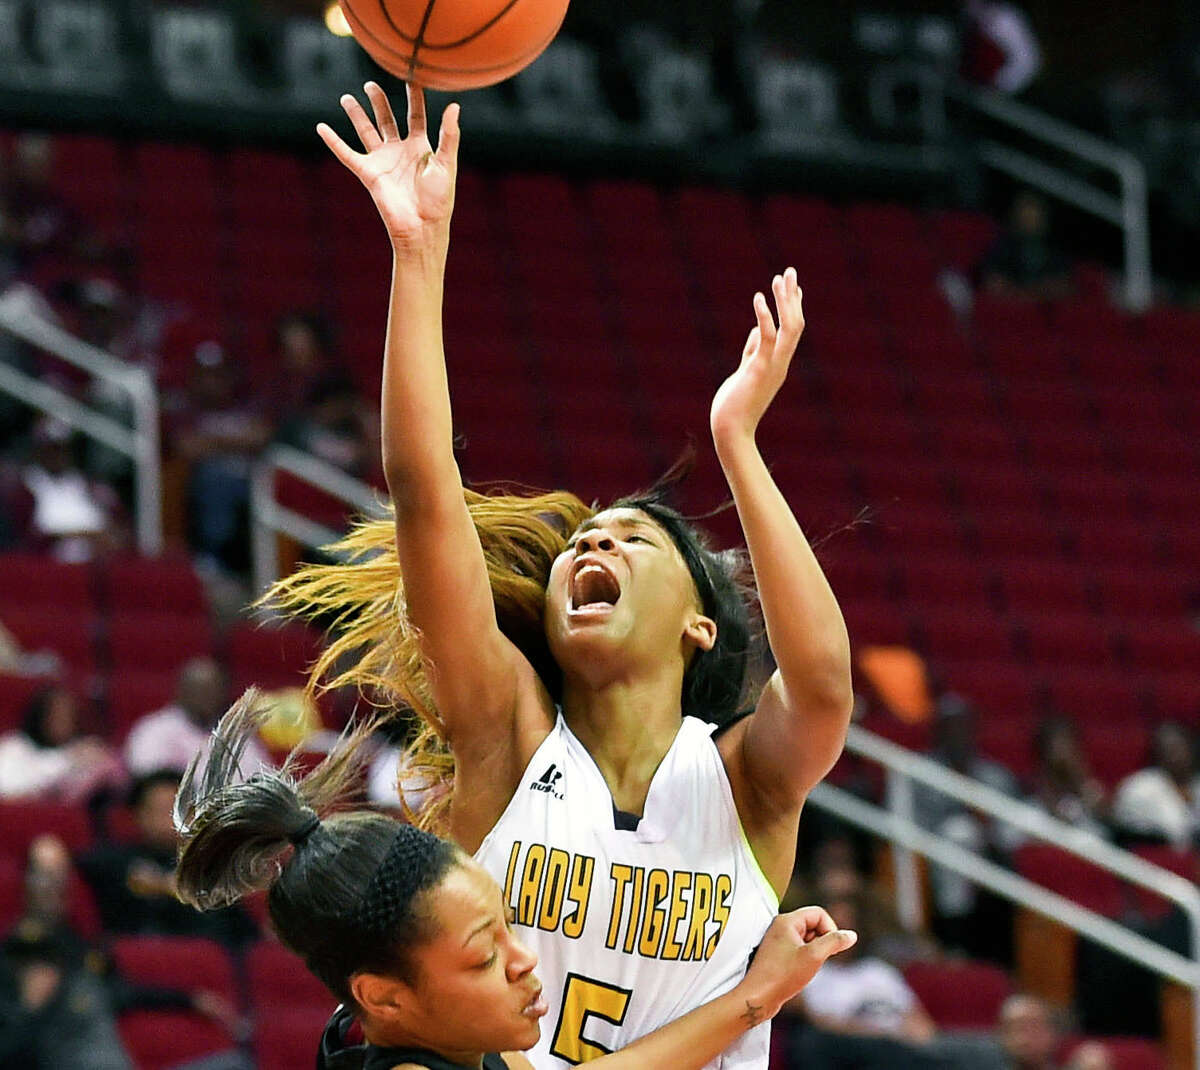 Grambling guard Shakyla Hill (5) shoots over Texas Southern guard Kaitlyn Palmer during the second half of an NCAA college basketball game in the championship of the Southwestern Athletic Conference, Saturday, March 11, 2017, in Houston. TSU won 70-66. Hill's 15 points, 10 rebounds, 10 steals and 10 assists in Grambling State's win over Alabama State on Wednesday gave the junior guard the fourth quadruple-double in NCAA women's basketball history. (AP Photo/Eric Christian Smith)